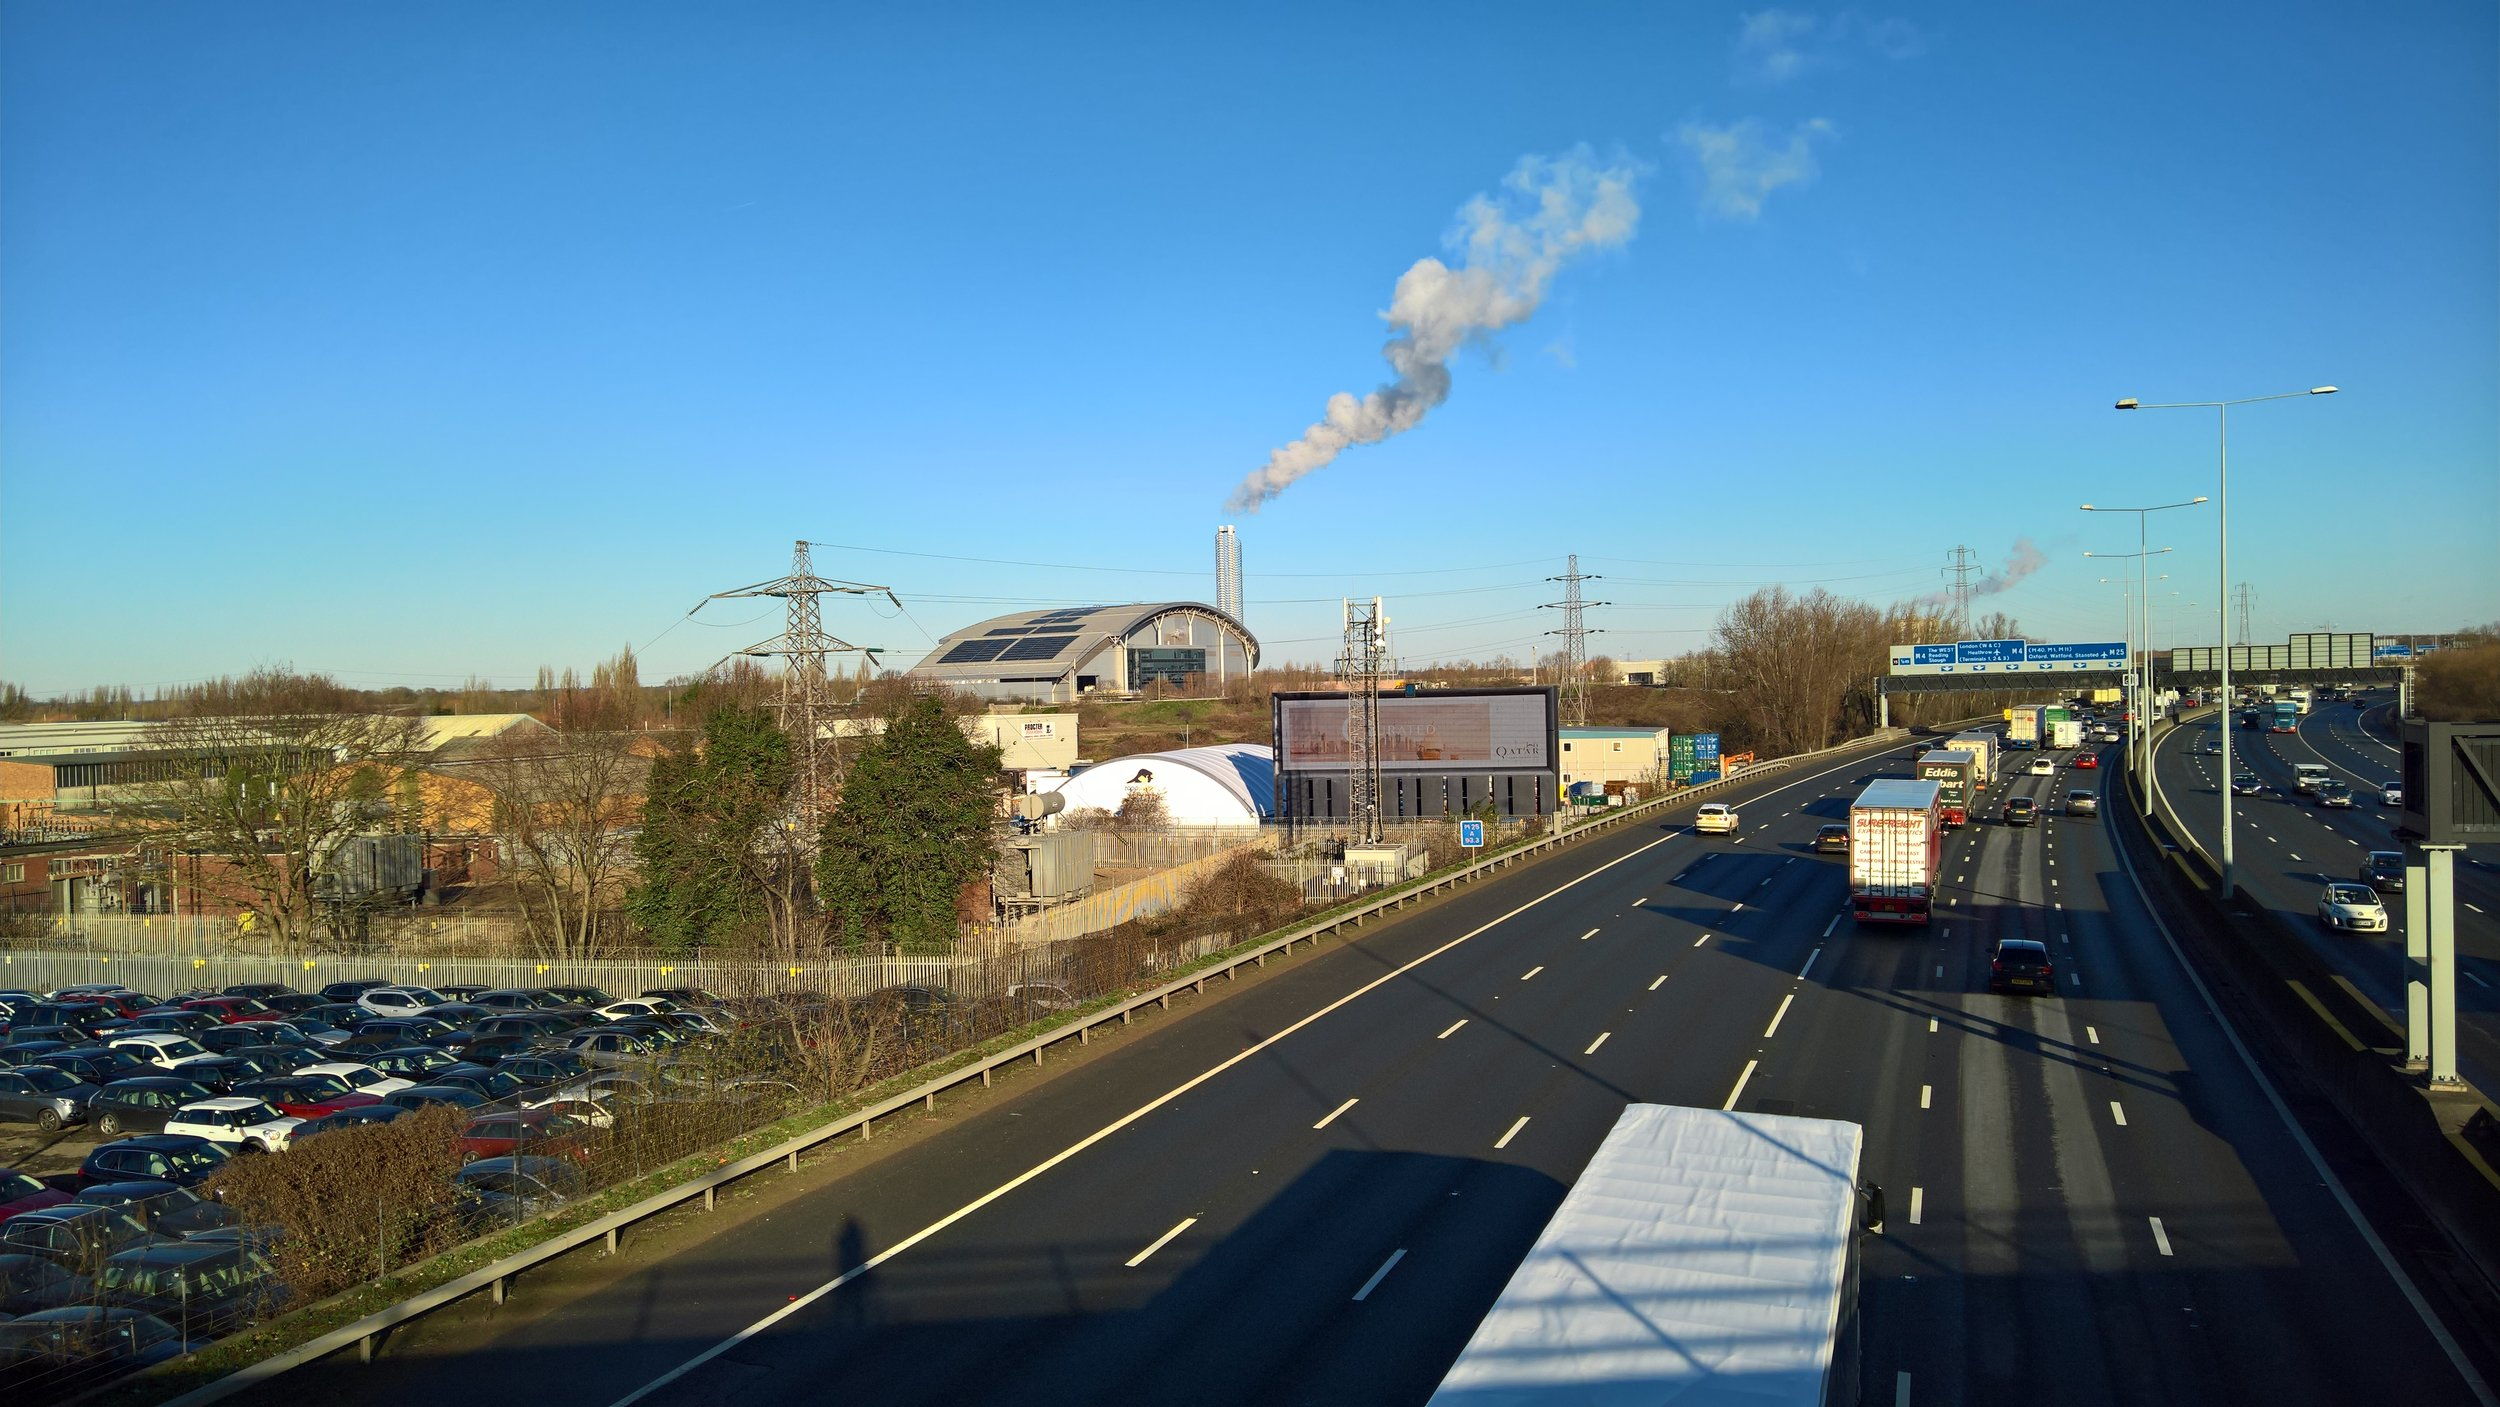 Slough's Incinerator puffing out smoke